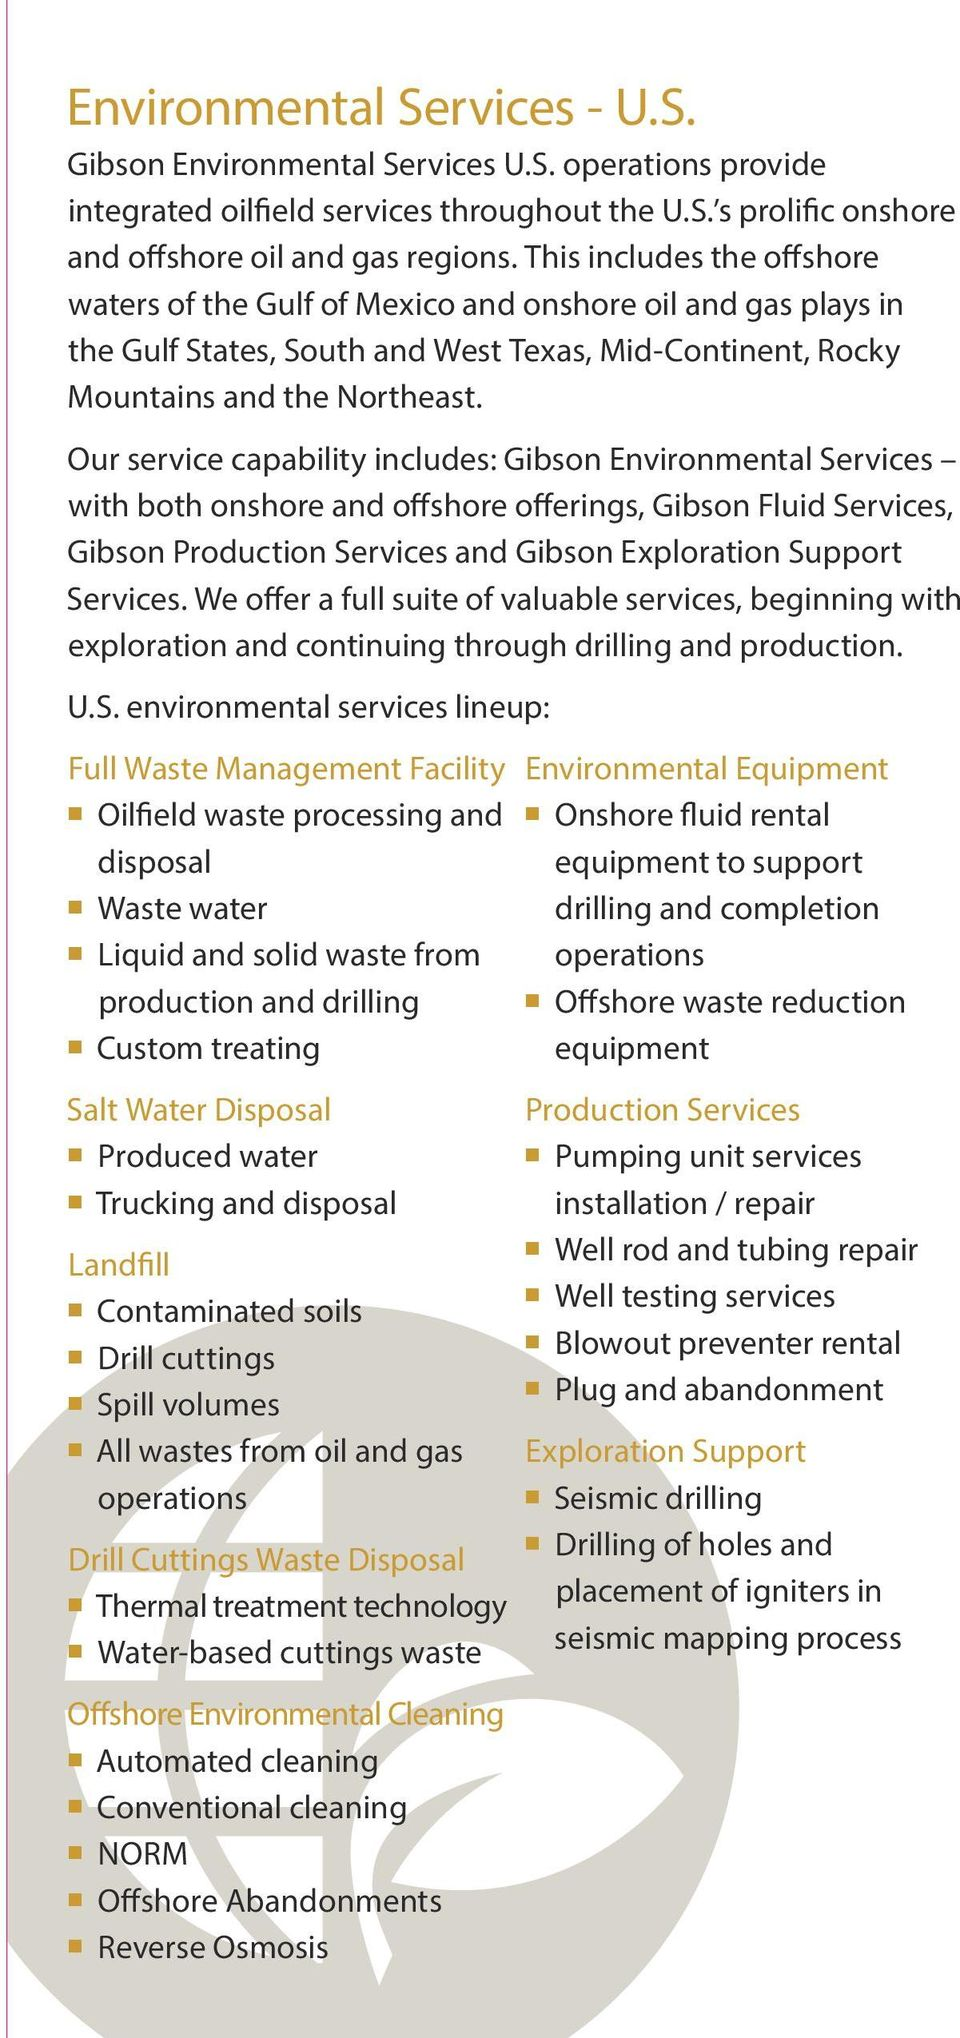 Our service capability includes: Gibson Environmental Services with both onshore and offshore offerings, Gibson Fluid Services, Gibson Production Services and Gibson Exploration Support Services.